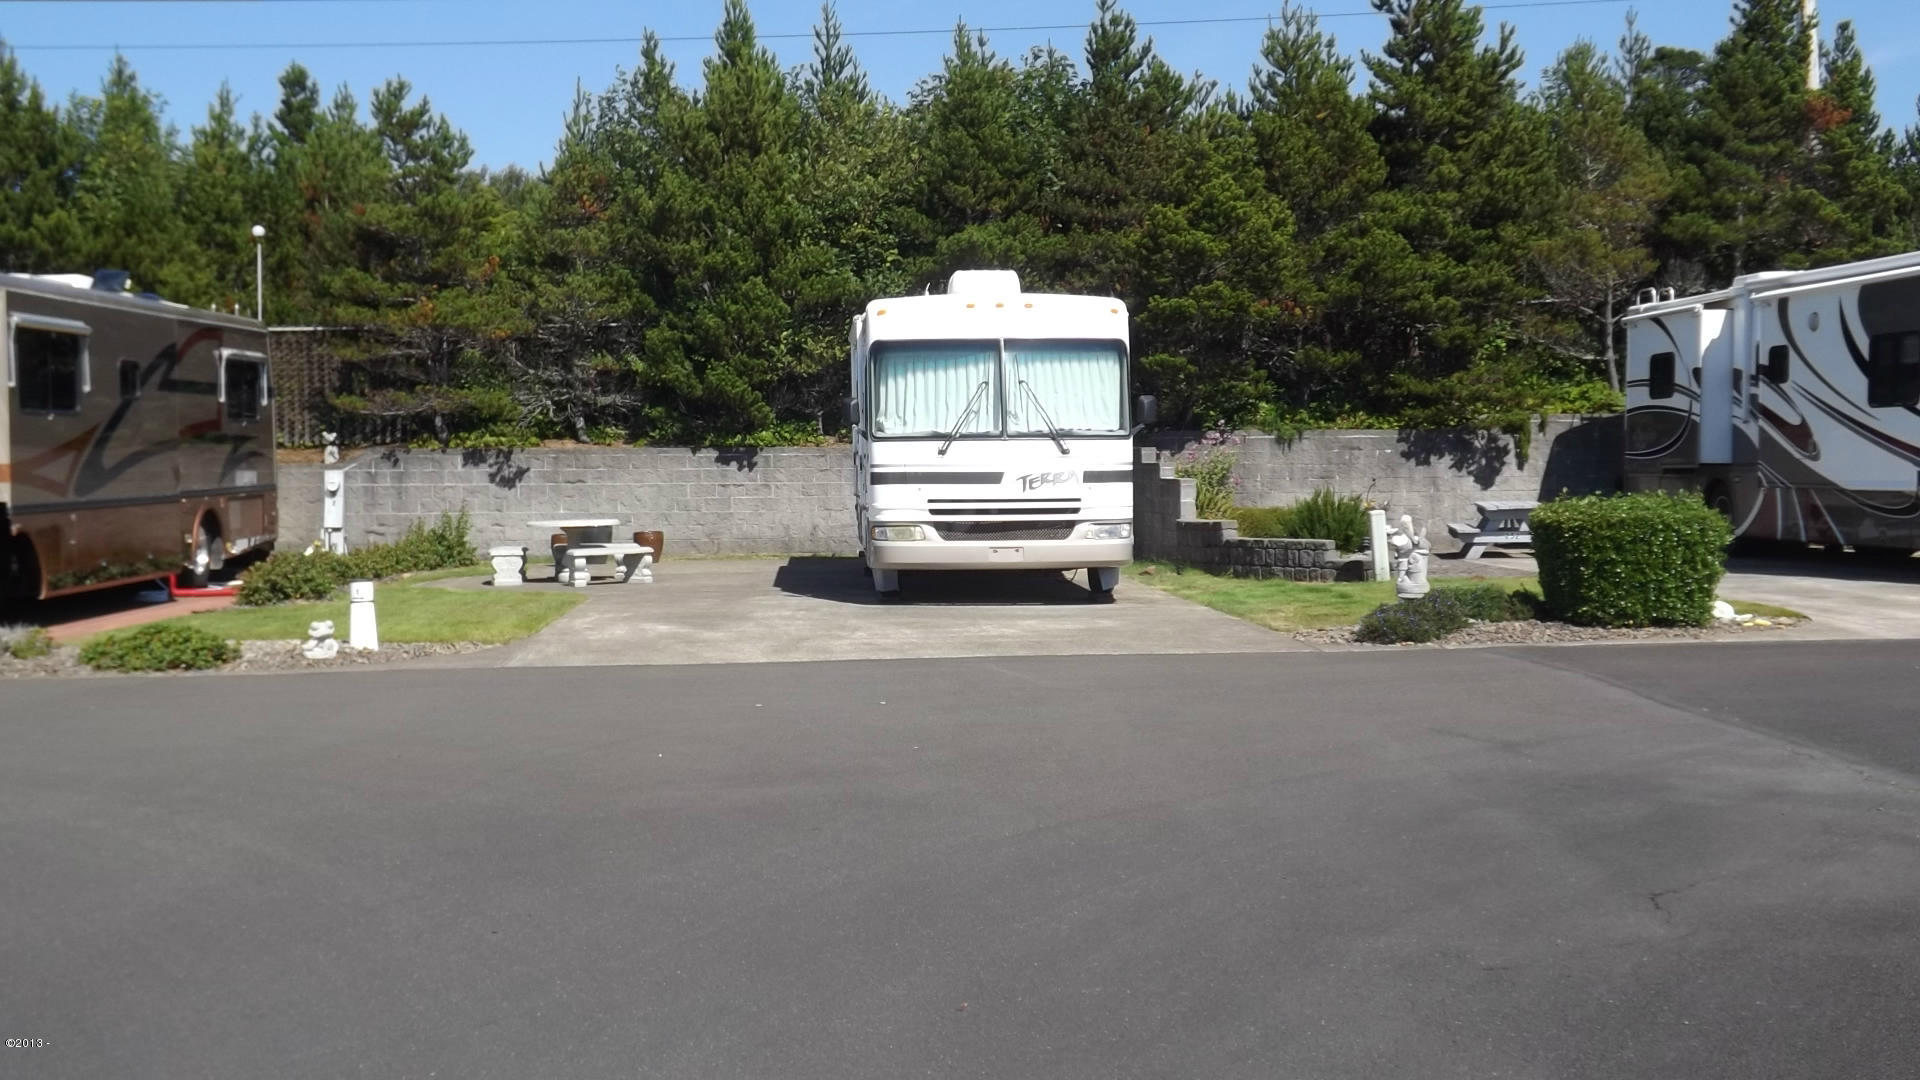 6225 N. Coast Hwy., Lot 1, Newport, OR 97365 - Lot 1 View from the street